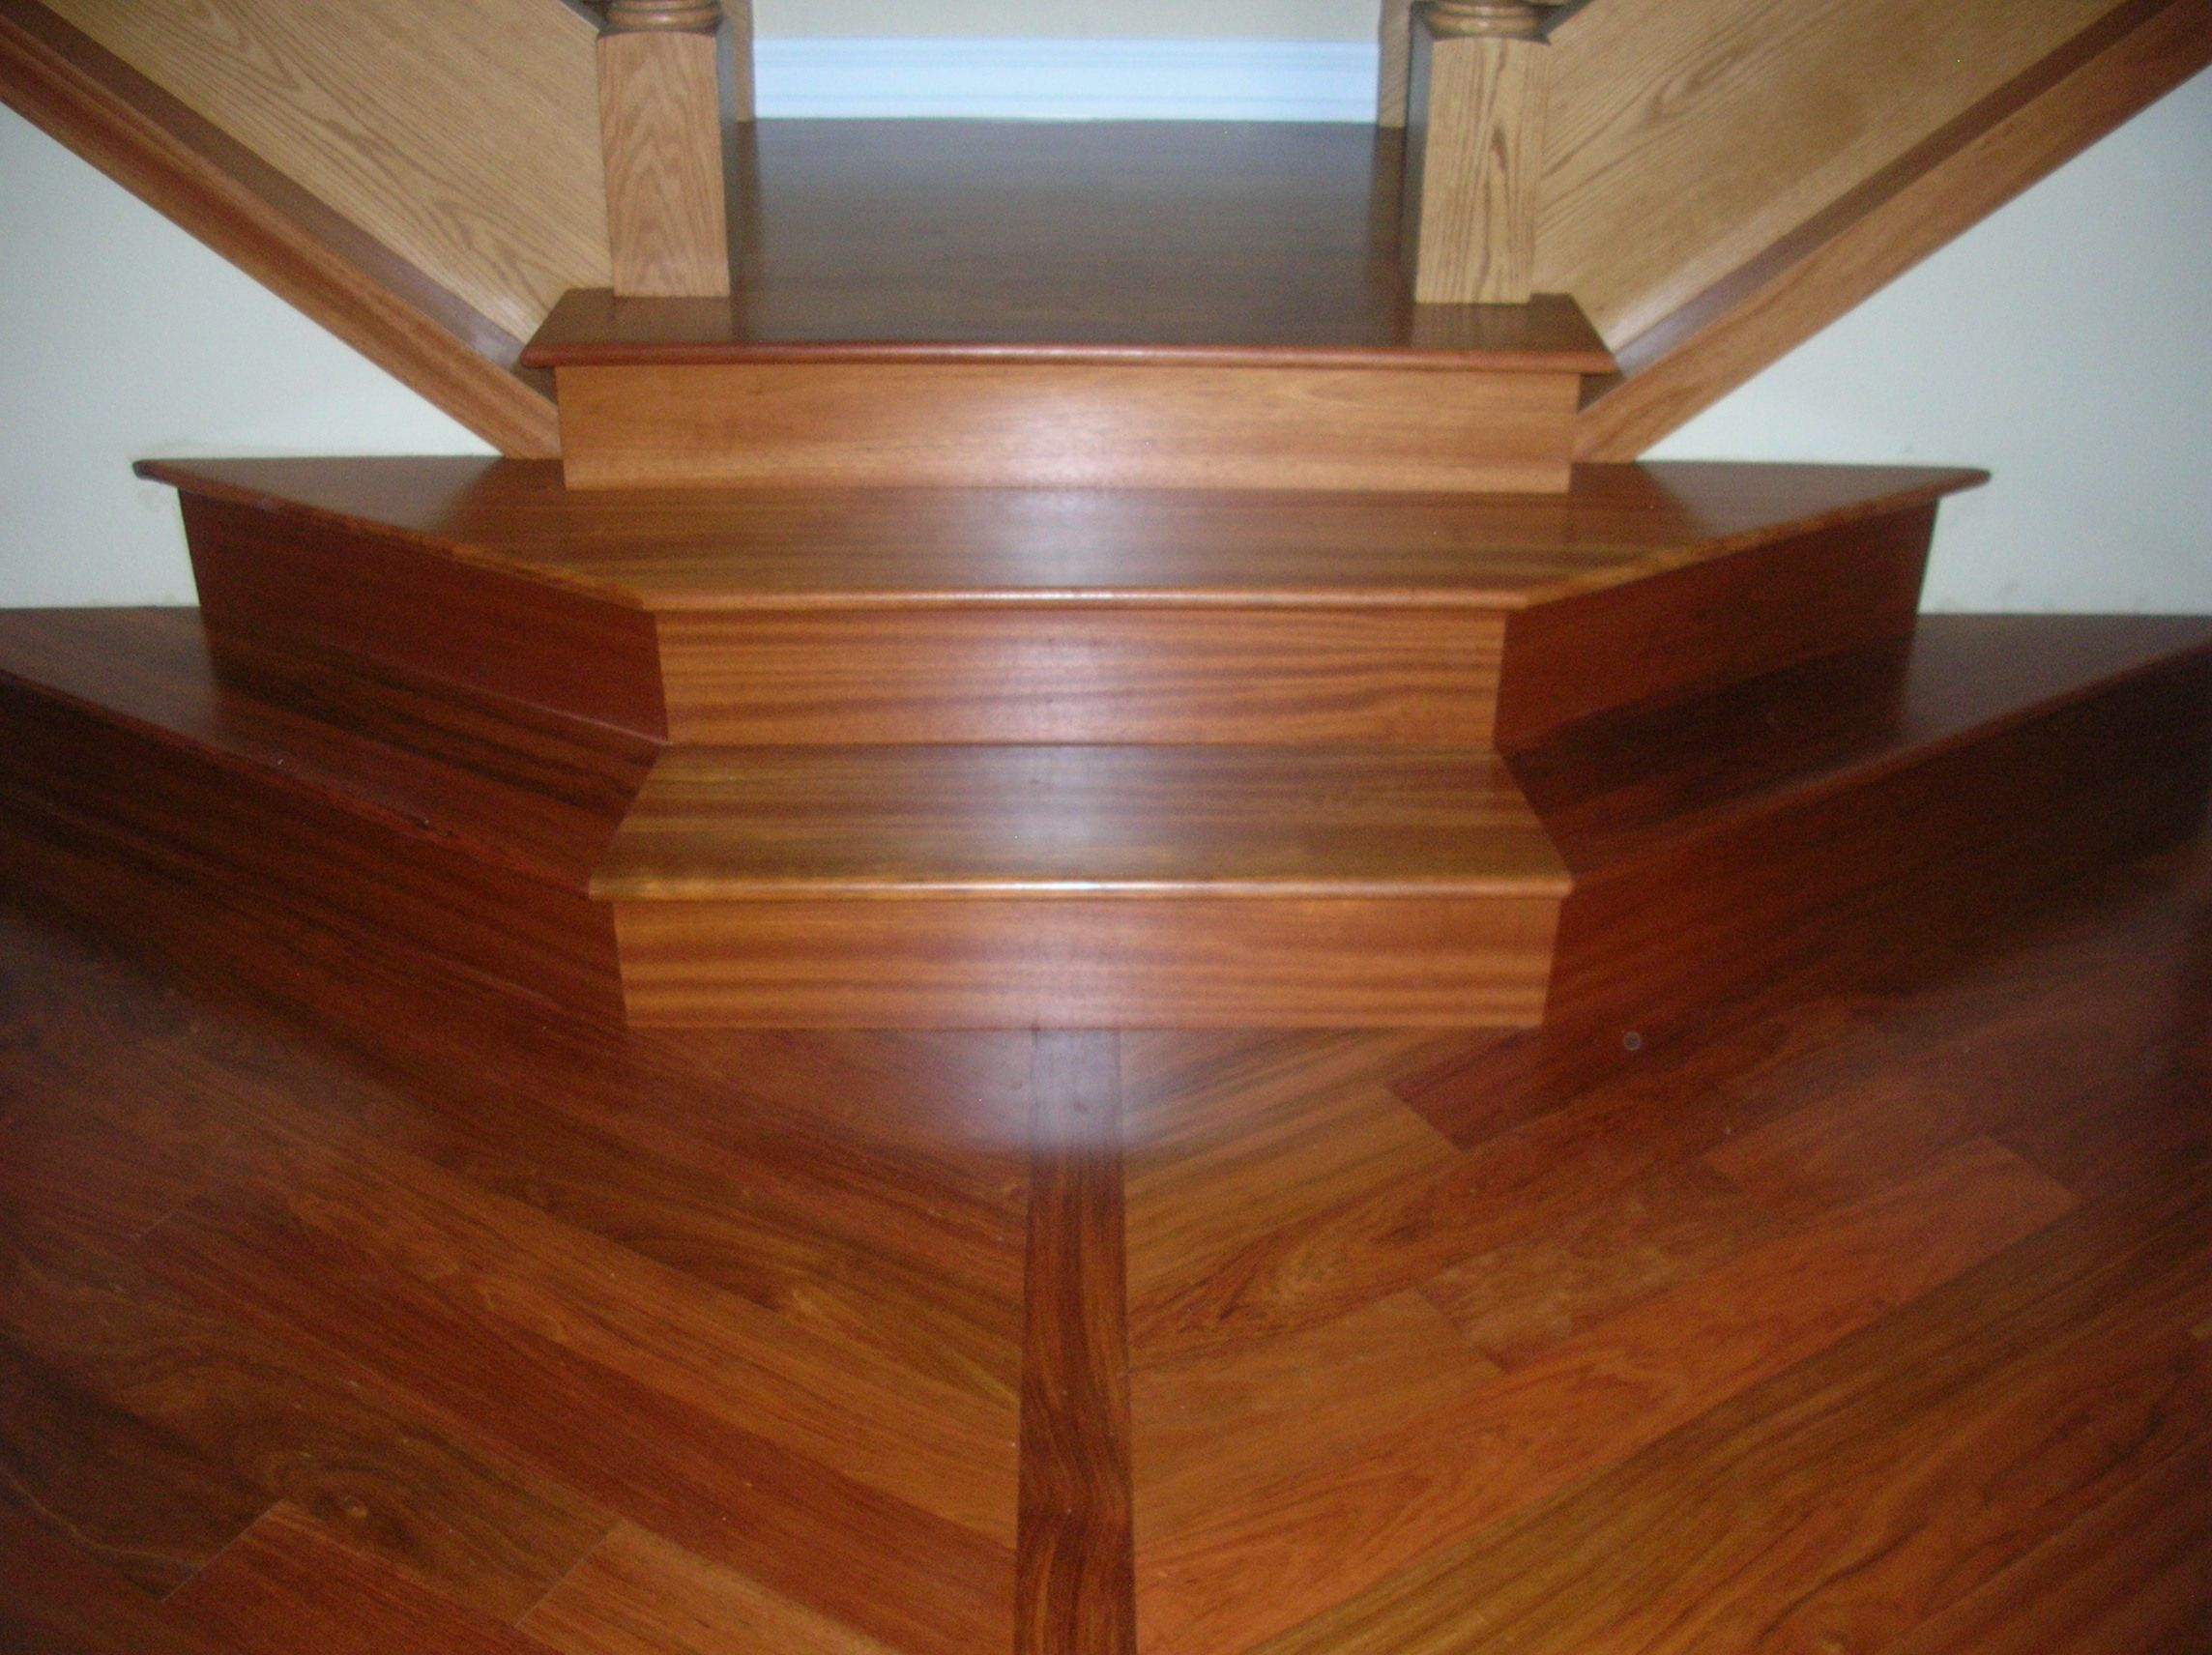 how do you lay 45 degree angle bamboo flooring - Google ...